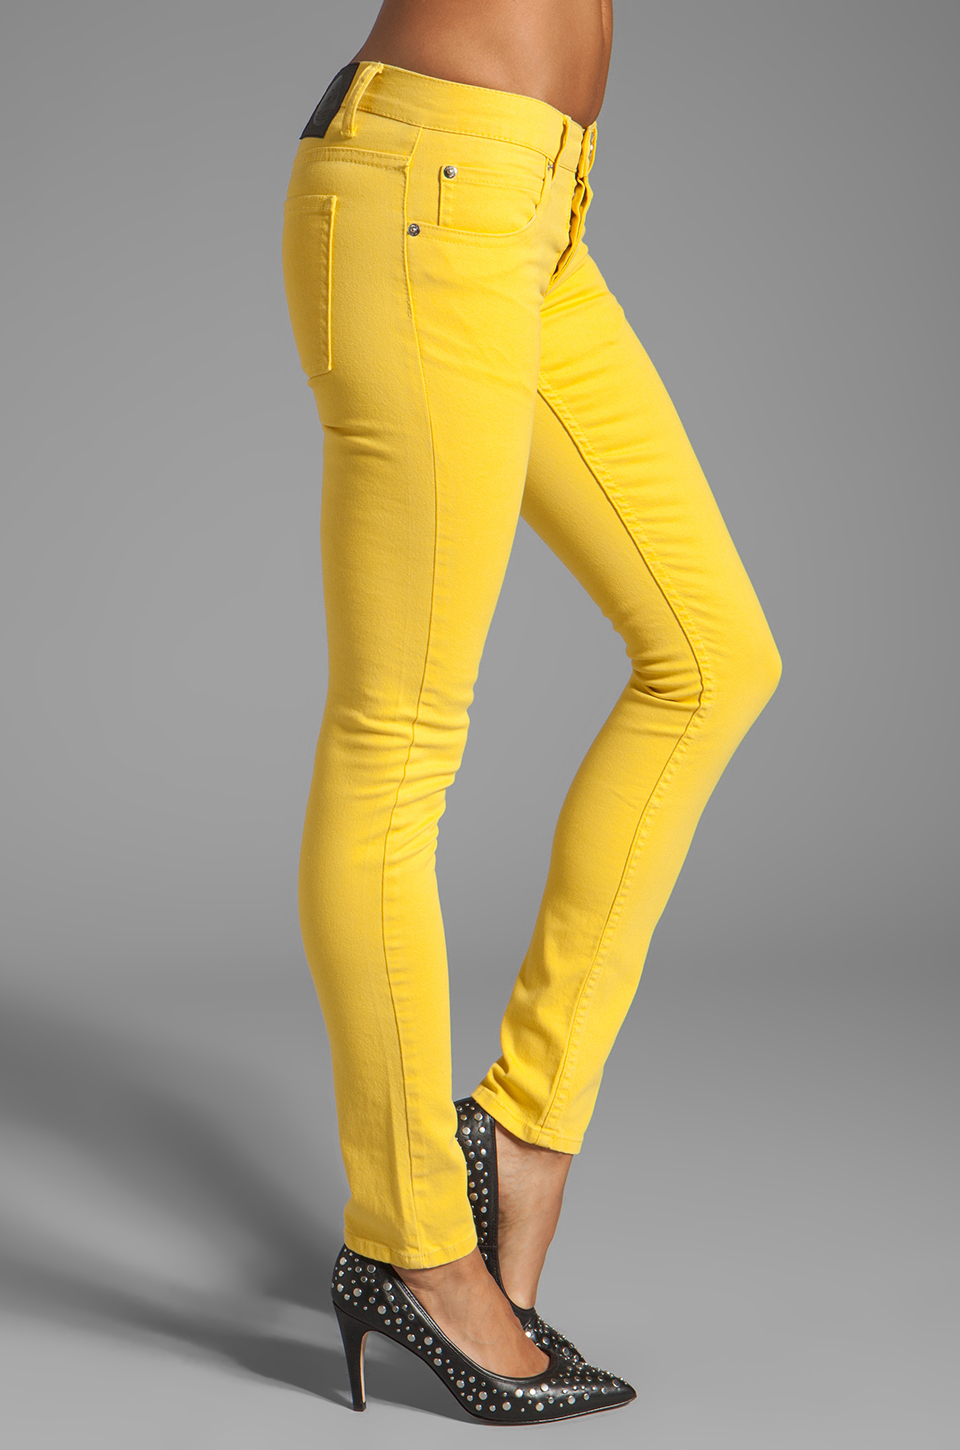 a50f04aaefb6 Lyst - Cheap Monday Narrow Jeans in Bright Yellow in Yellow